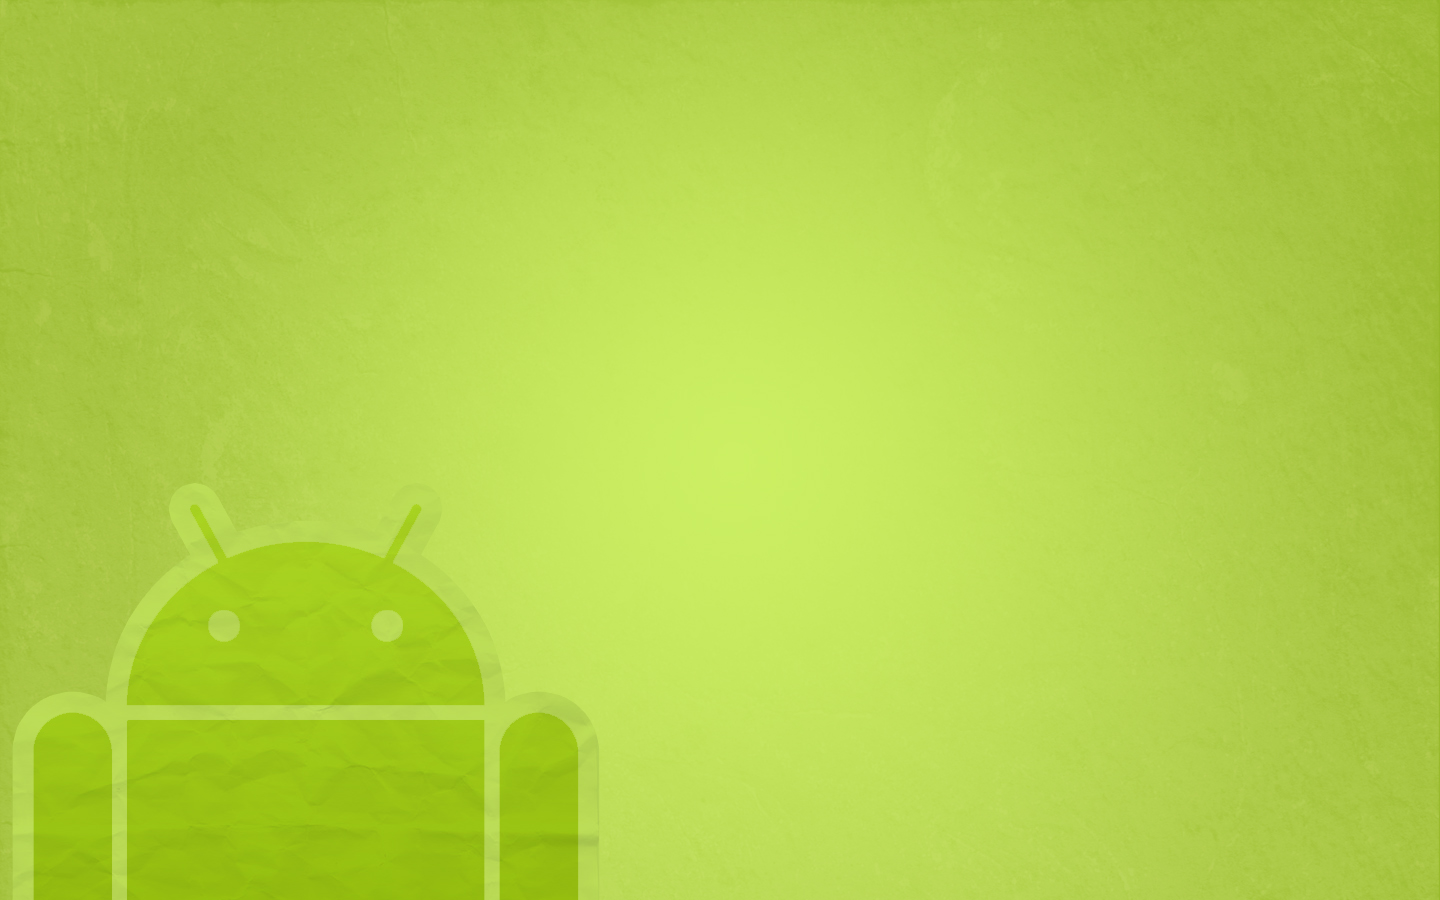 android logo wallpaper hq latest best wallpapers 2011